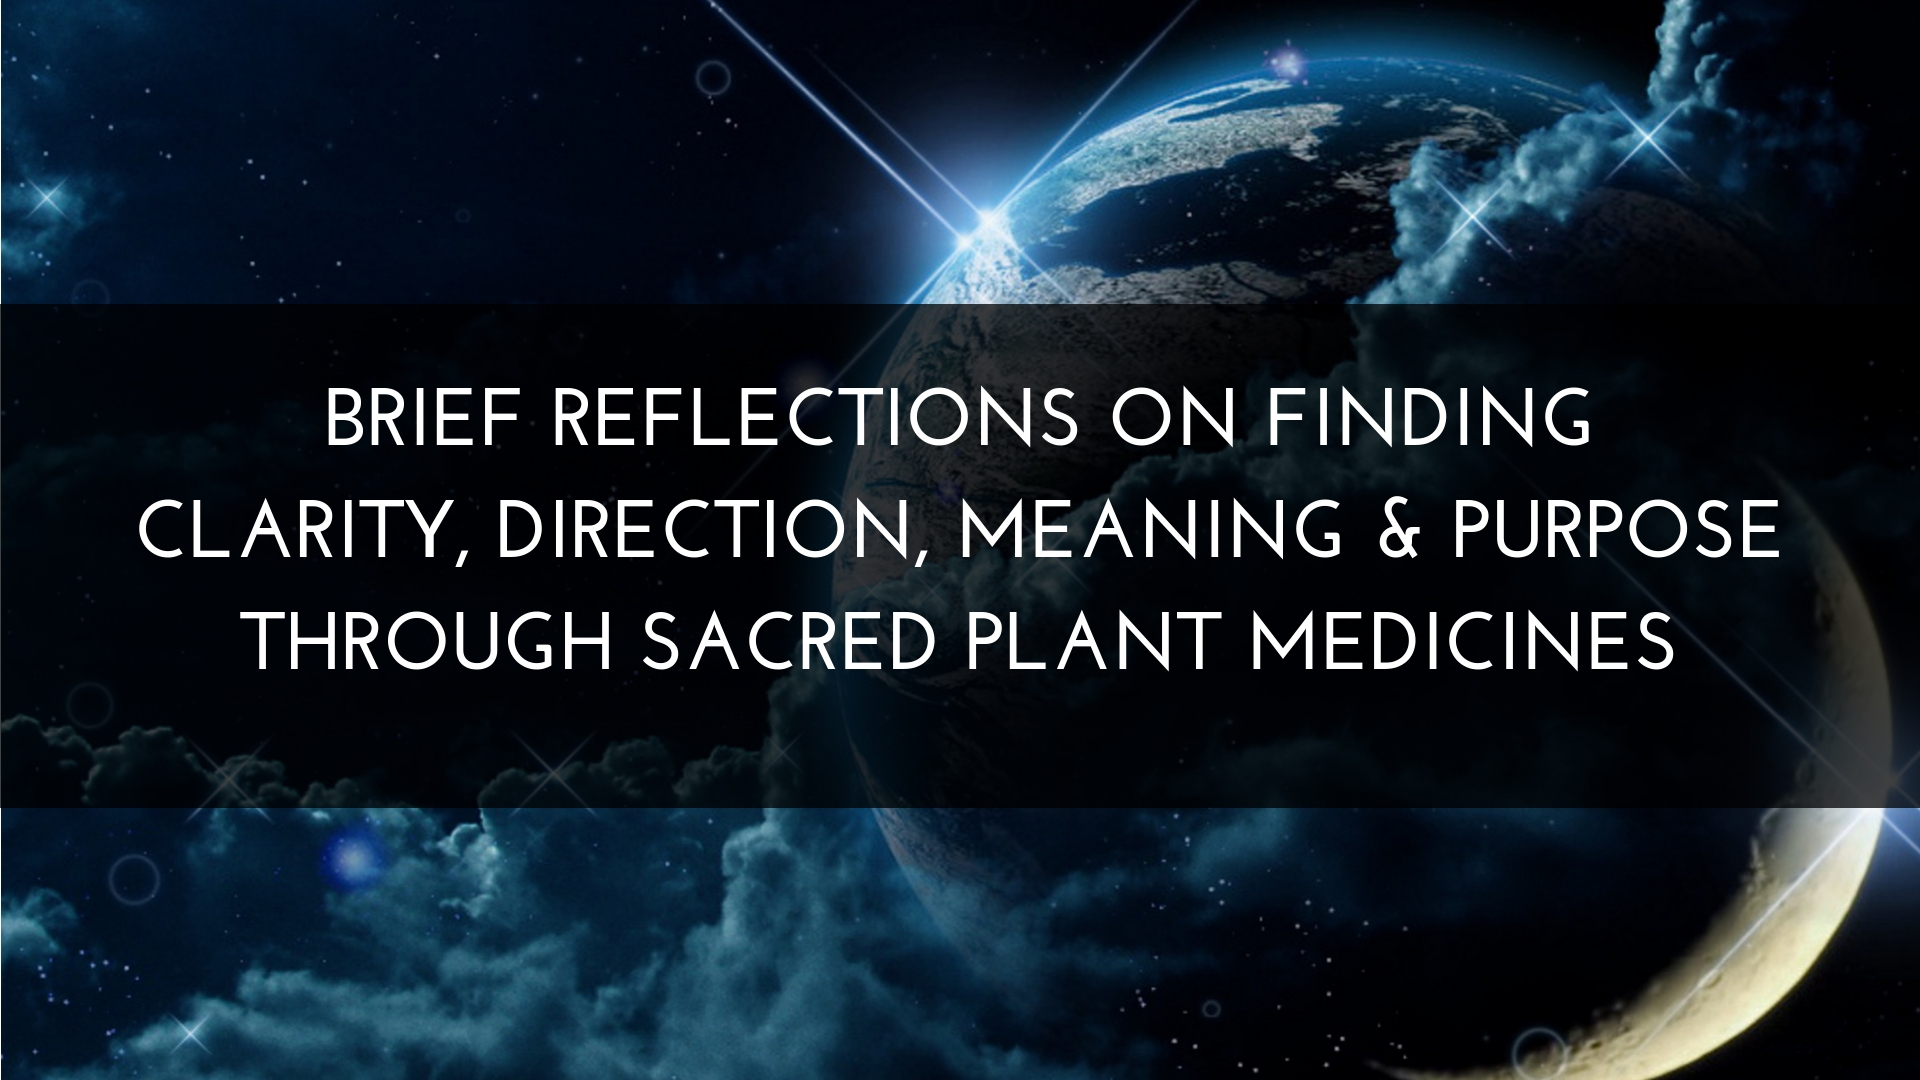 Brief Reflections On Finding Clarity, Direction, Meaning & Purpose Through Sacred Plant Medicines